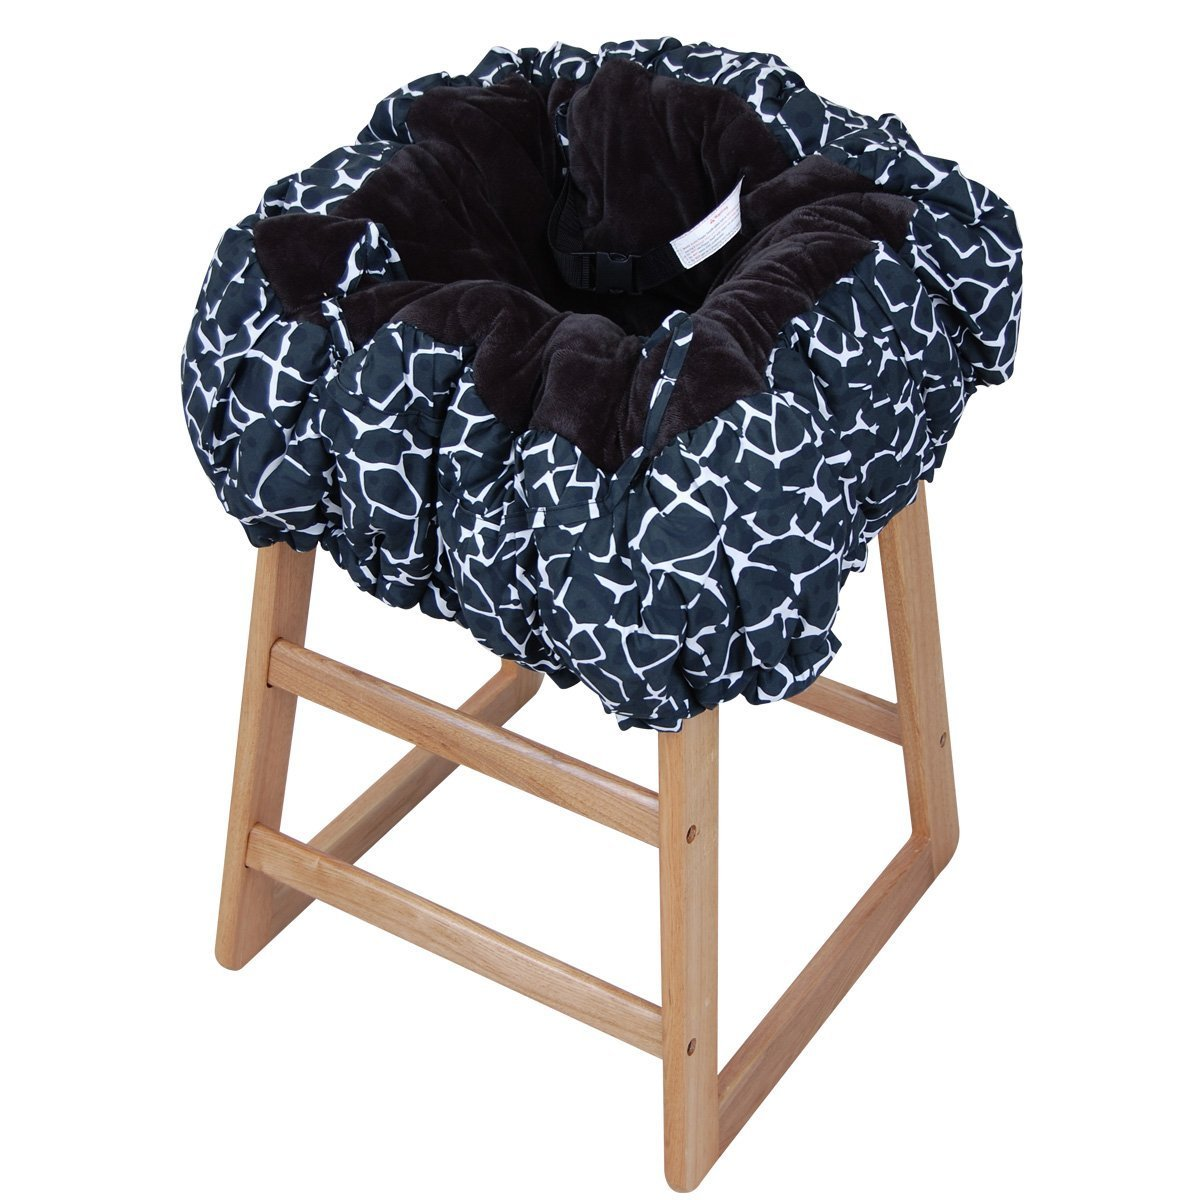 Floppy Seat Deluxe Velboa Shopping Cart and High Chair Cover with Messenger Bag, Black Giraffe (Discontinued by Manufacturer) 50-010